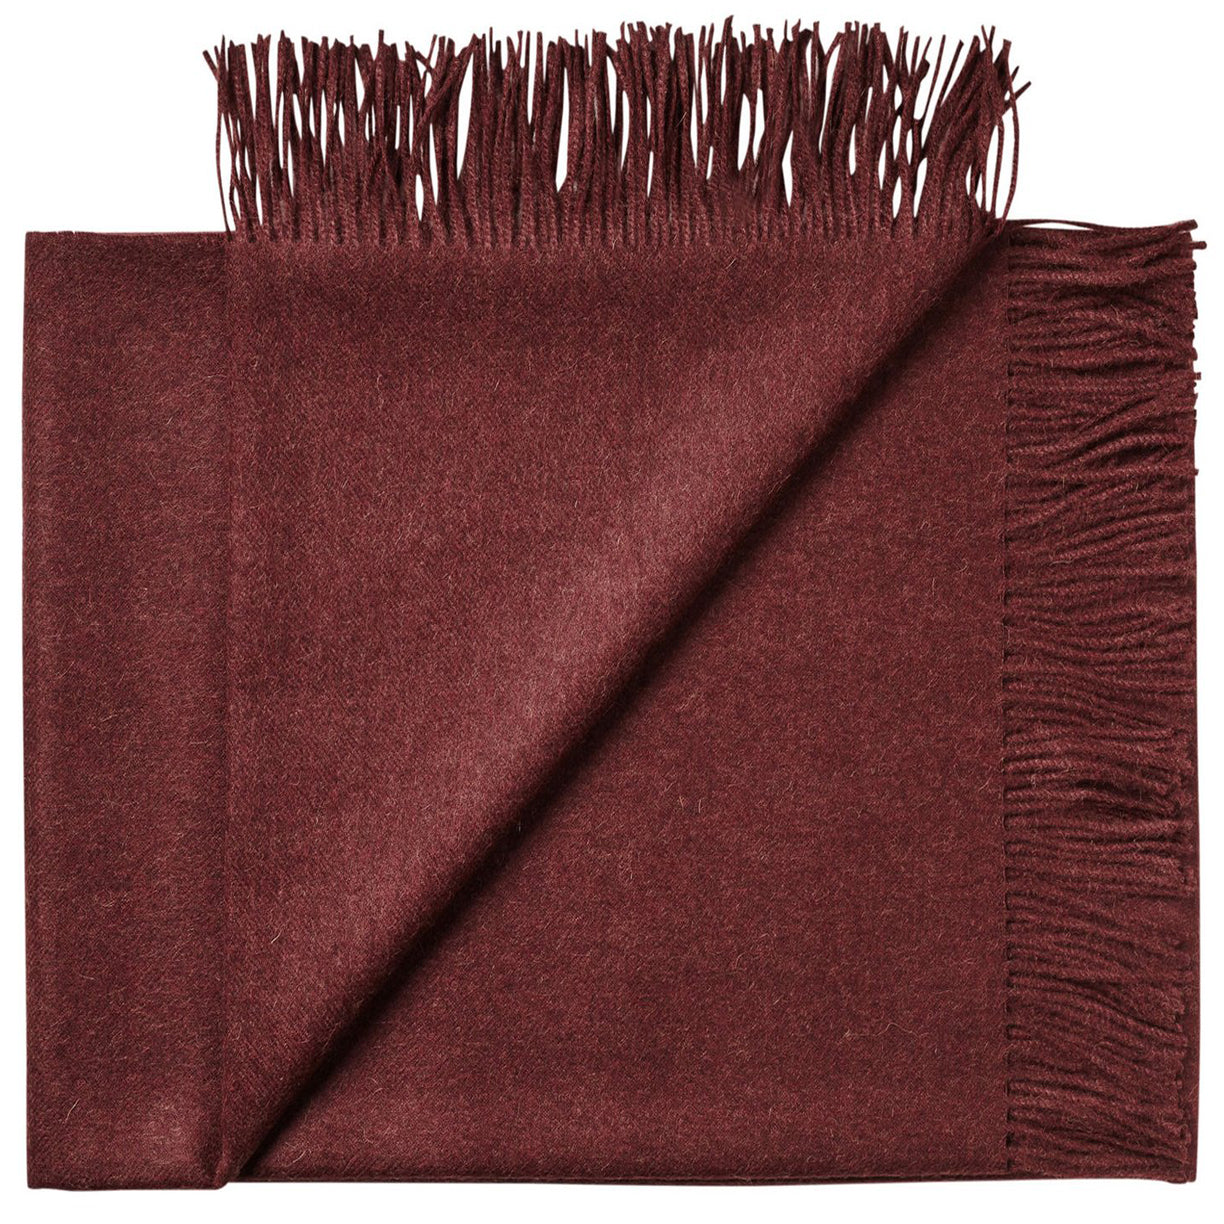 Soft Alpaca Wool Throw Blanket Bordeaux Red